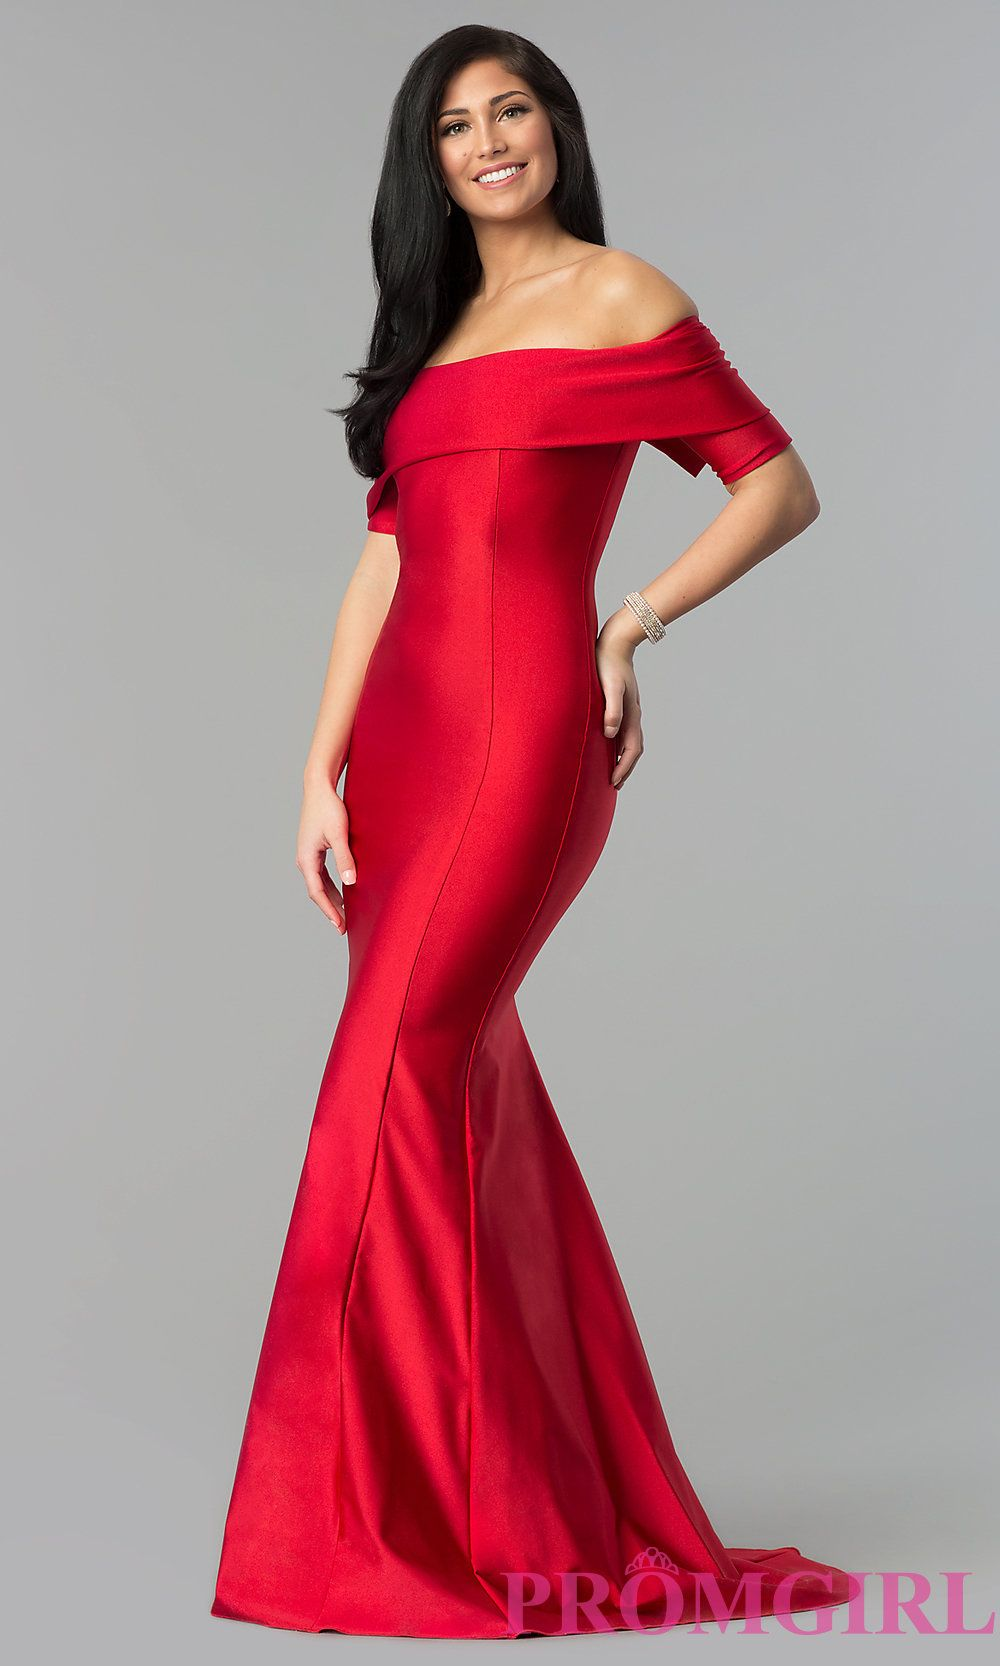 Long Off The Shoulder Prom Dress With Train Prom Dress With Train Dresses Prom Dresses With Sleeves [ 1666 x 1000 Pixel ]